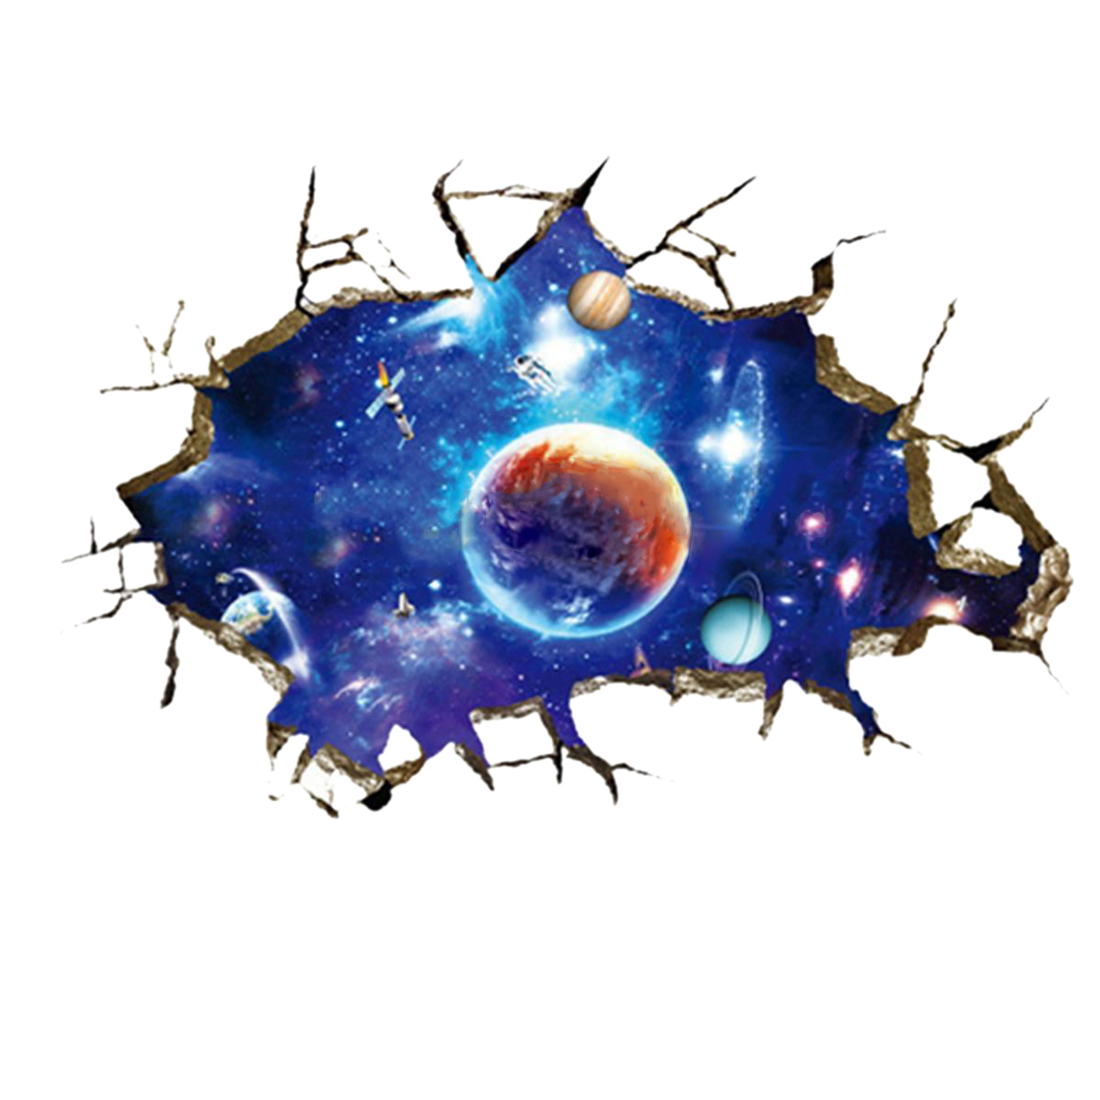 3D Outer Space Planet Wall Stickers Home Decor Mural Art Wall Decals Removable Colorful